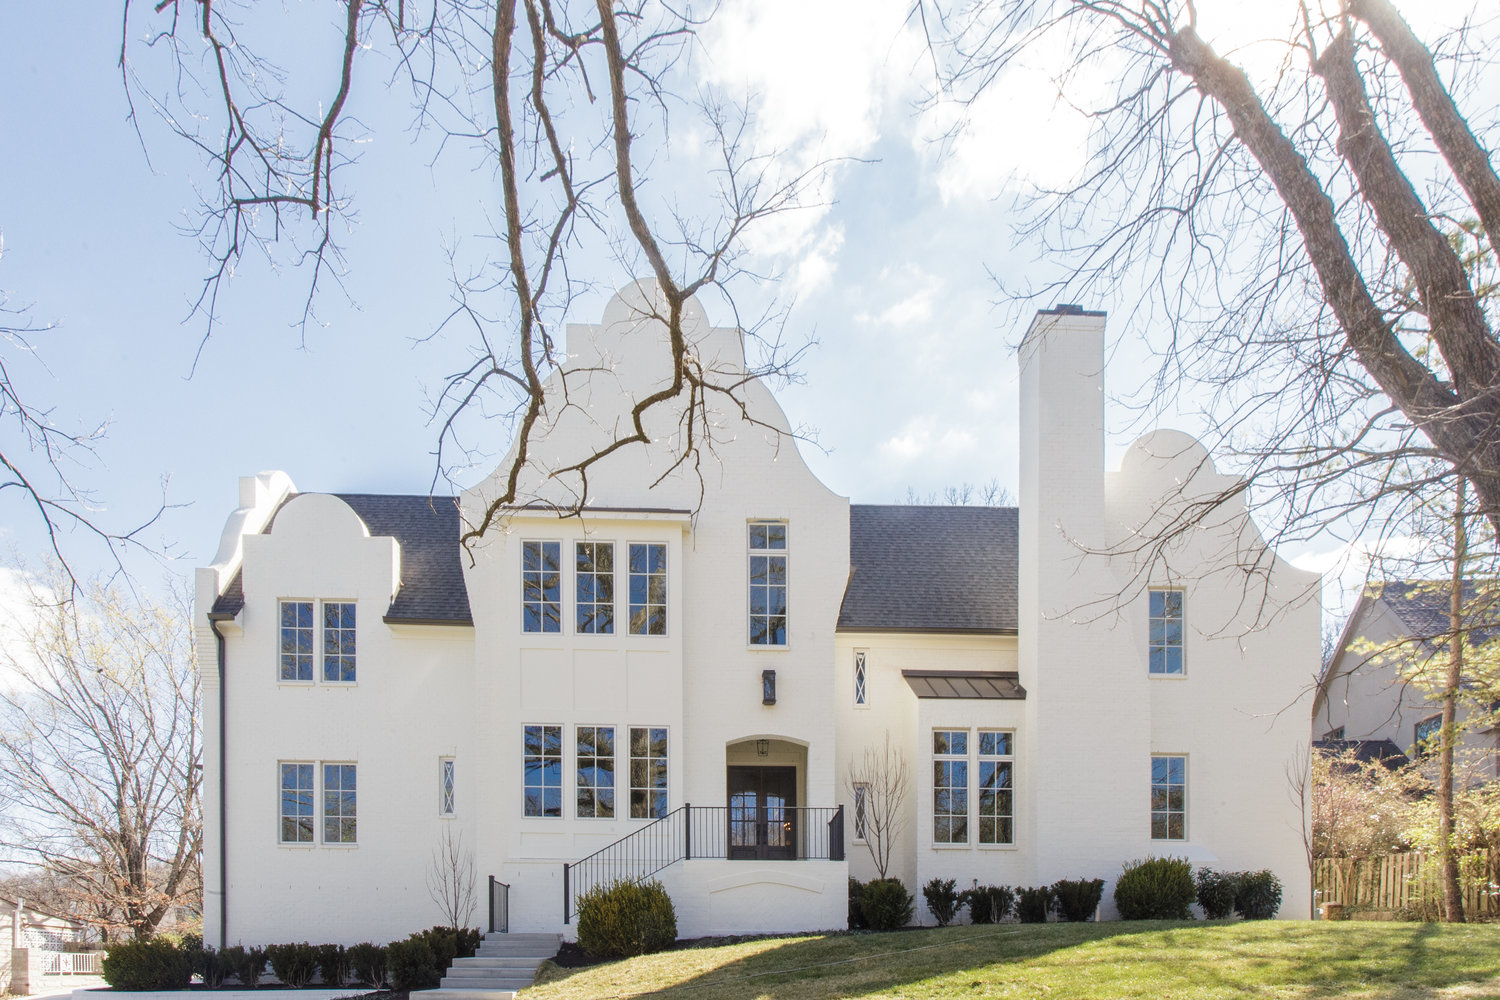 Spec & Custom Homes - Think you are ready to start your life in Tennessee with a new beautiful home? We are ready to help you. Whether you already have a lot, choose to purchase and build on one of Chandelier's properties, or need guidance and help finding a lot, we are fully equipped to meet all those needs. We are continuously starting new projects and have properties available which can be customized to meet your needs should they be purchased in the early stages of construction.